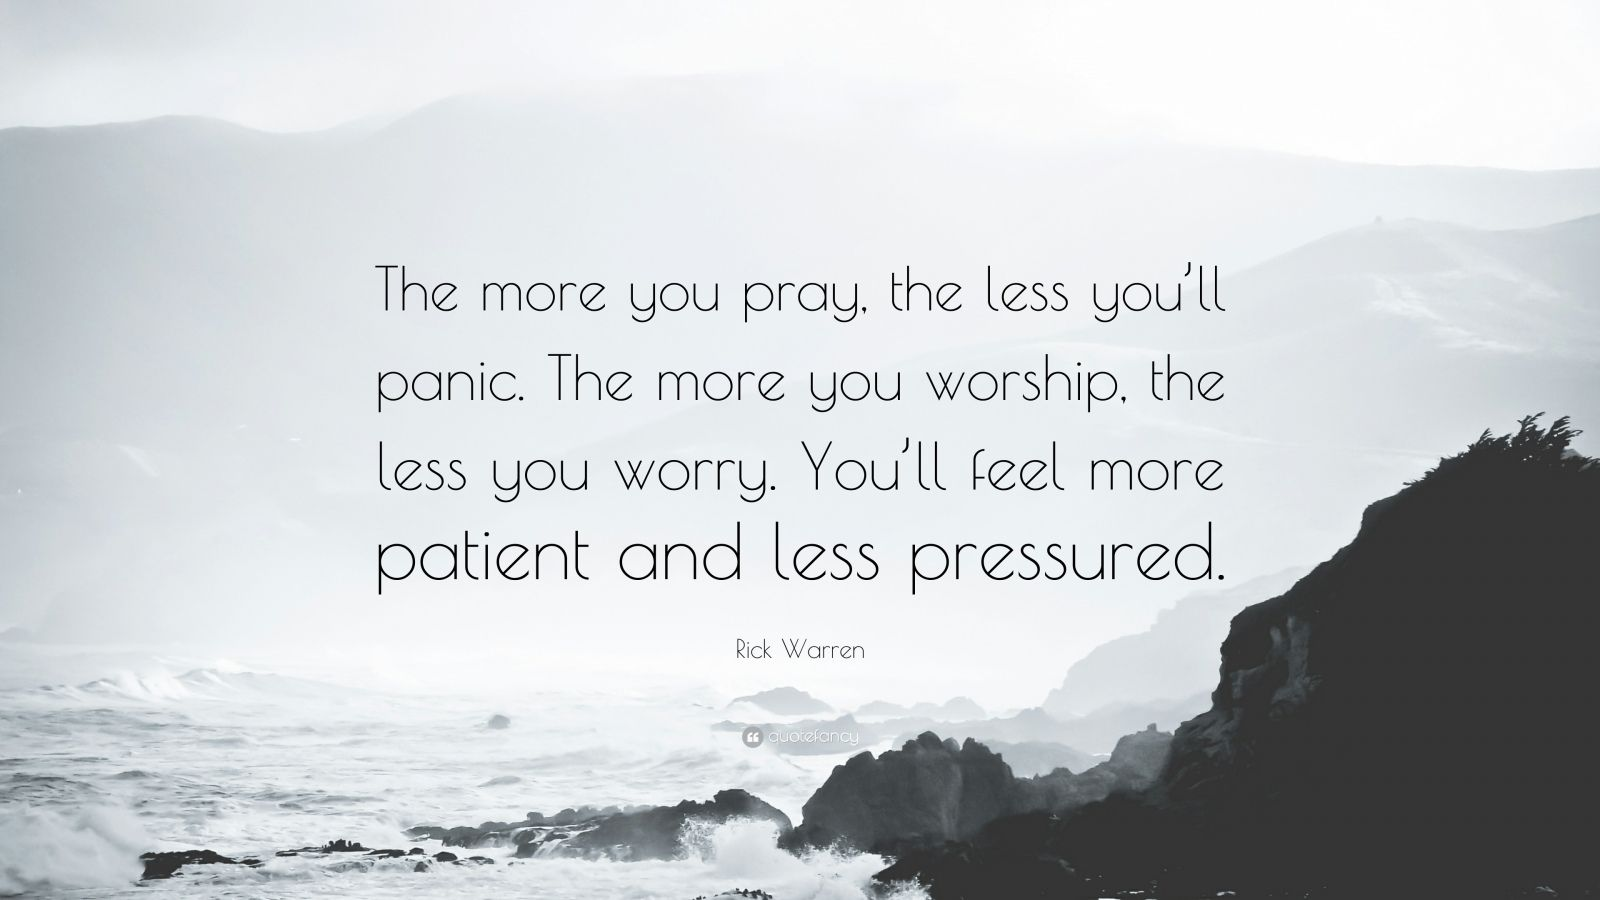 """Rick Warren Quote: """"The more you pray, the less you'll panic. The more you worship, the less you worry. You'll feel more patient and less pressured."""""""